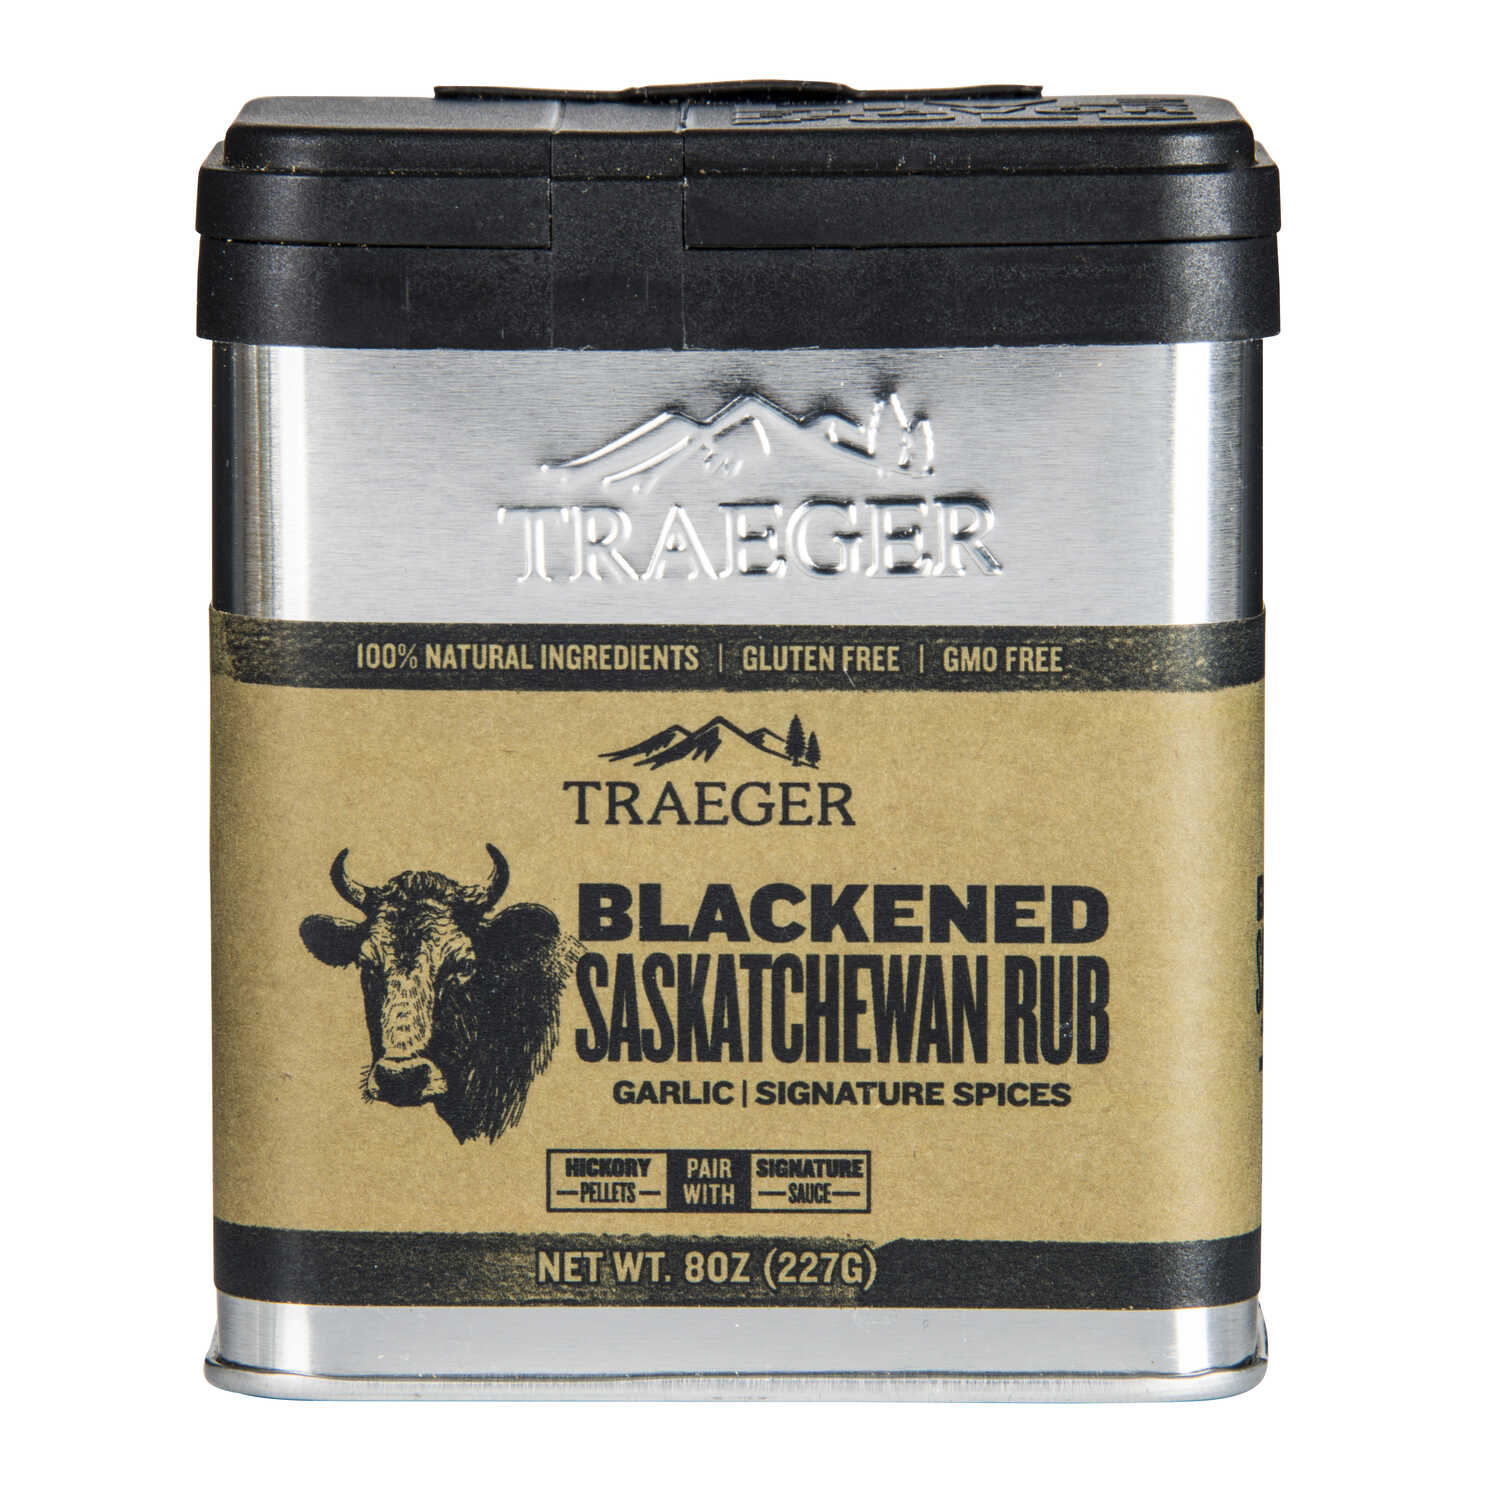 Traeger  Blackened Saskatchewan  Garlic and Spices  Seasoning Rub  8.25 oz.